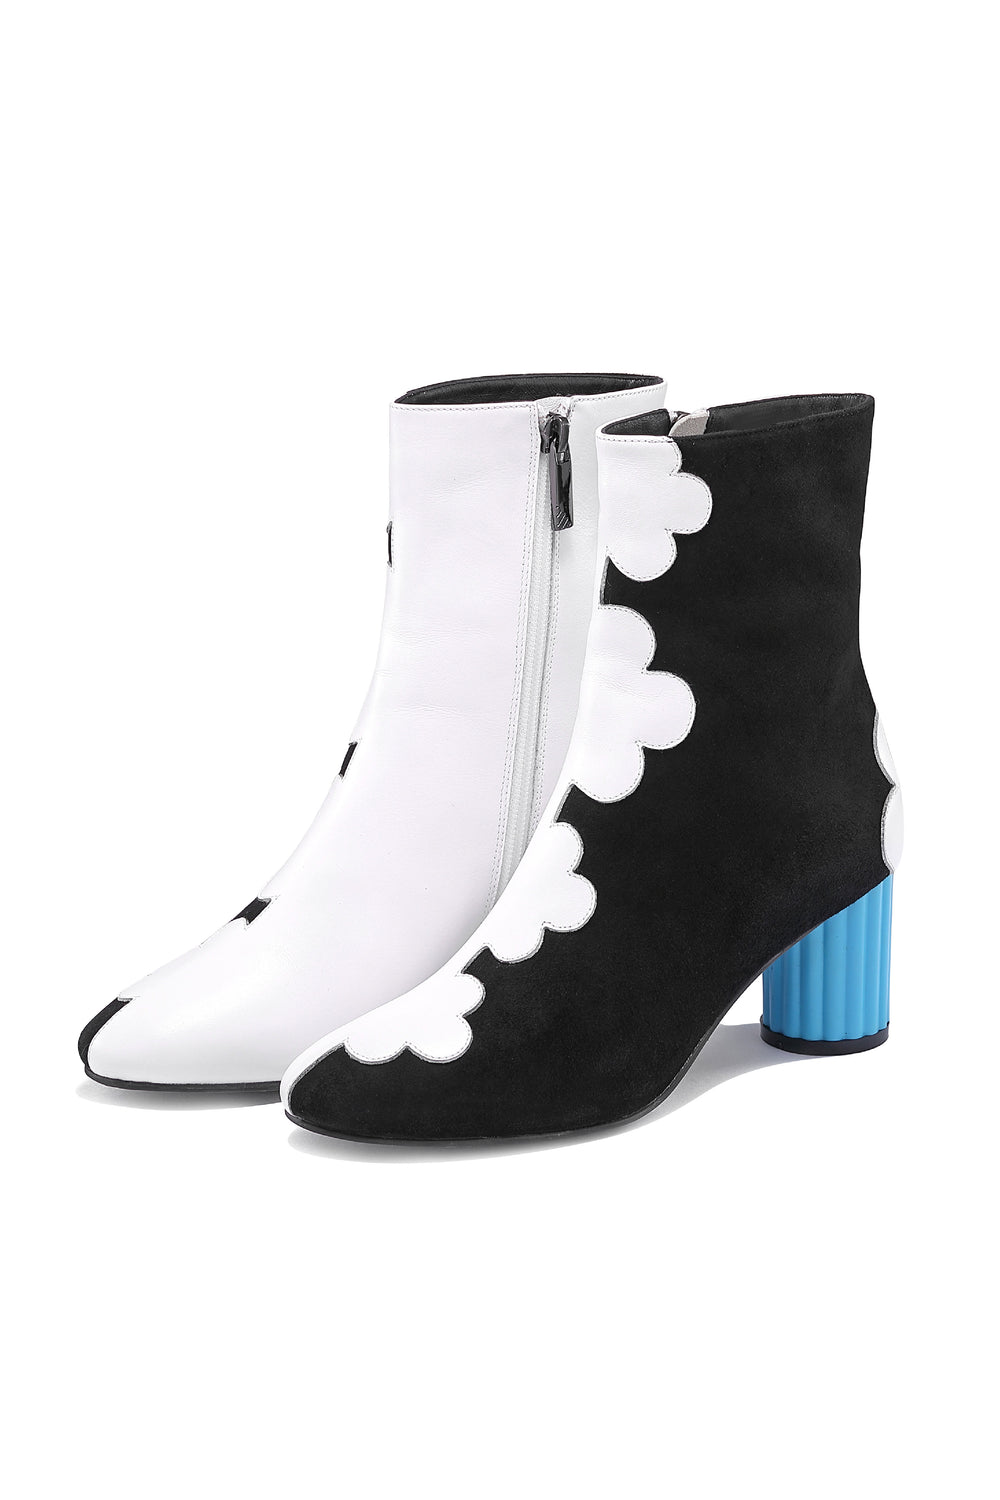 PRE-ORDER - Petal Around The Edge BLK Boots